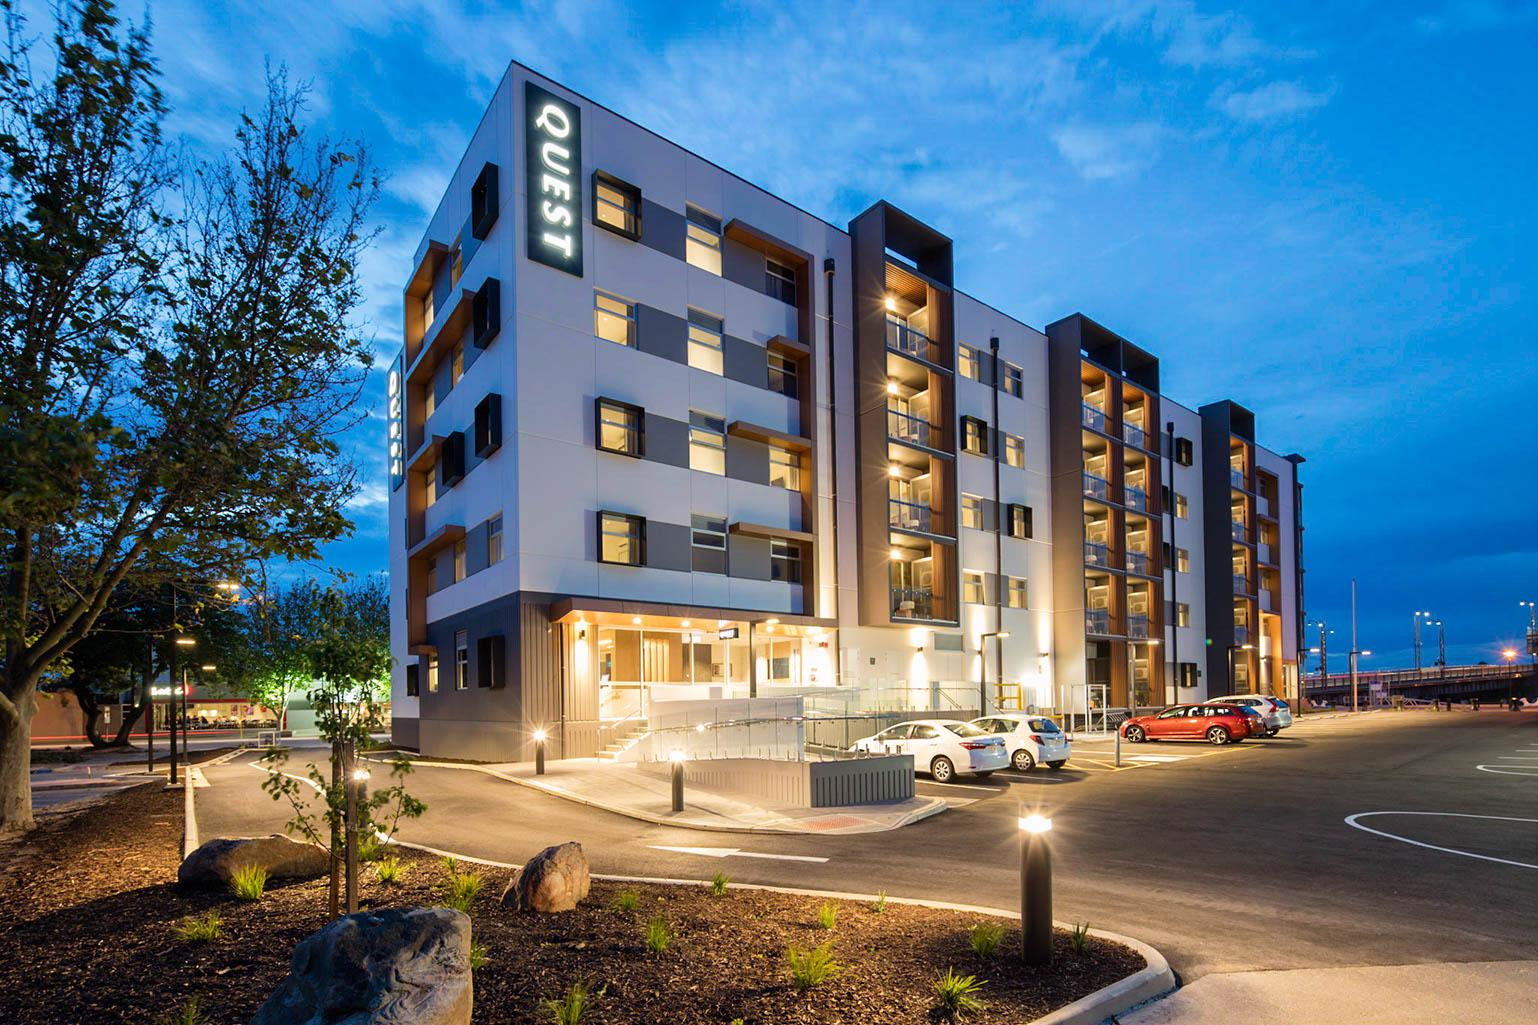 Victoria Accommodation Serviced Apartments Quest Apartment Hotels